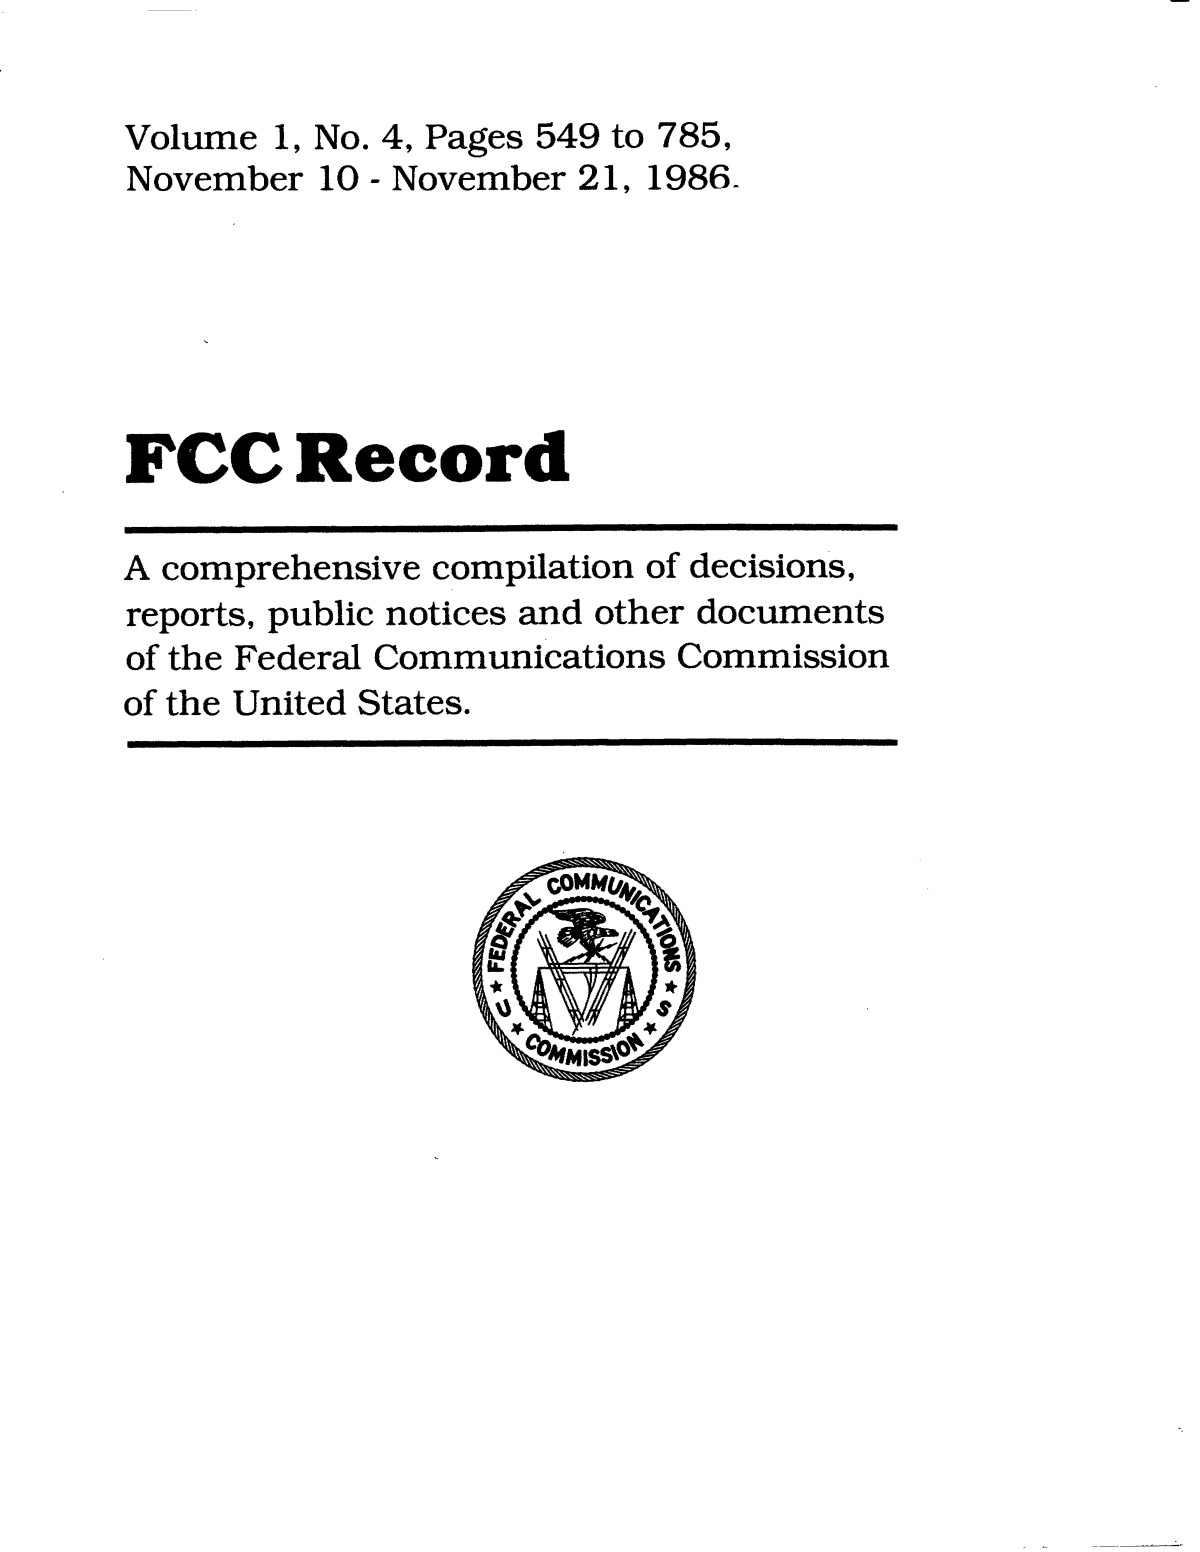 FCC Record, Volume 1, No. 4, Pages 549 to 785, November 10 - November 21, 1986                                                                                                      Front Cover